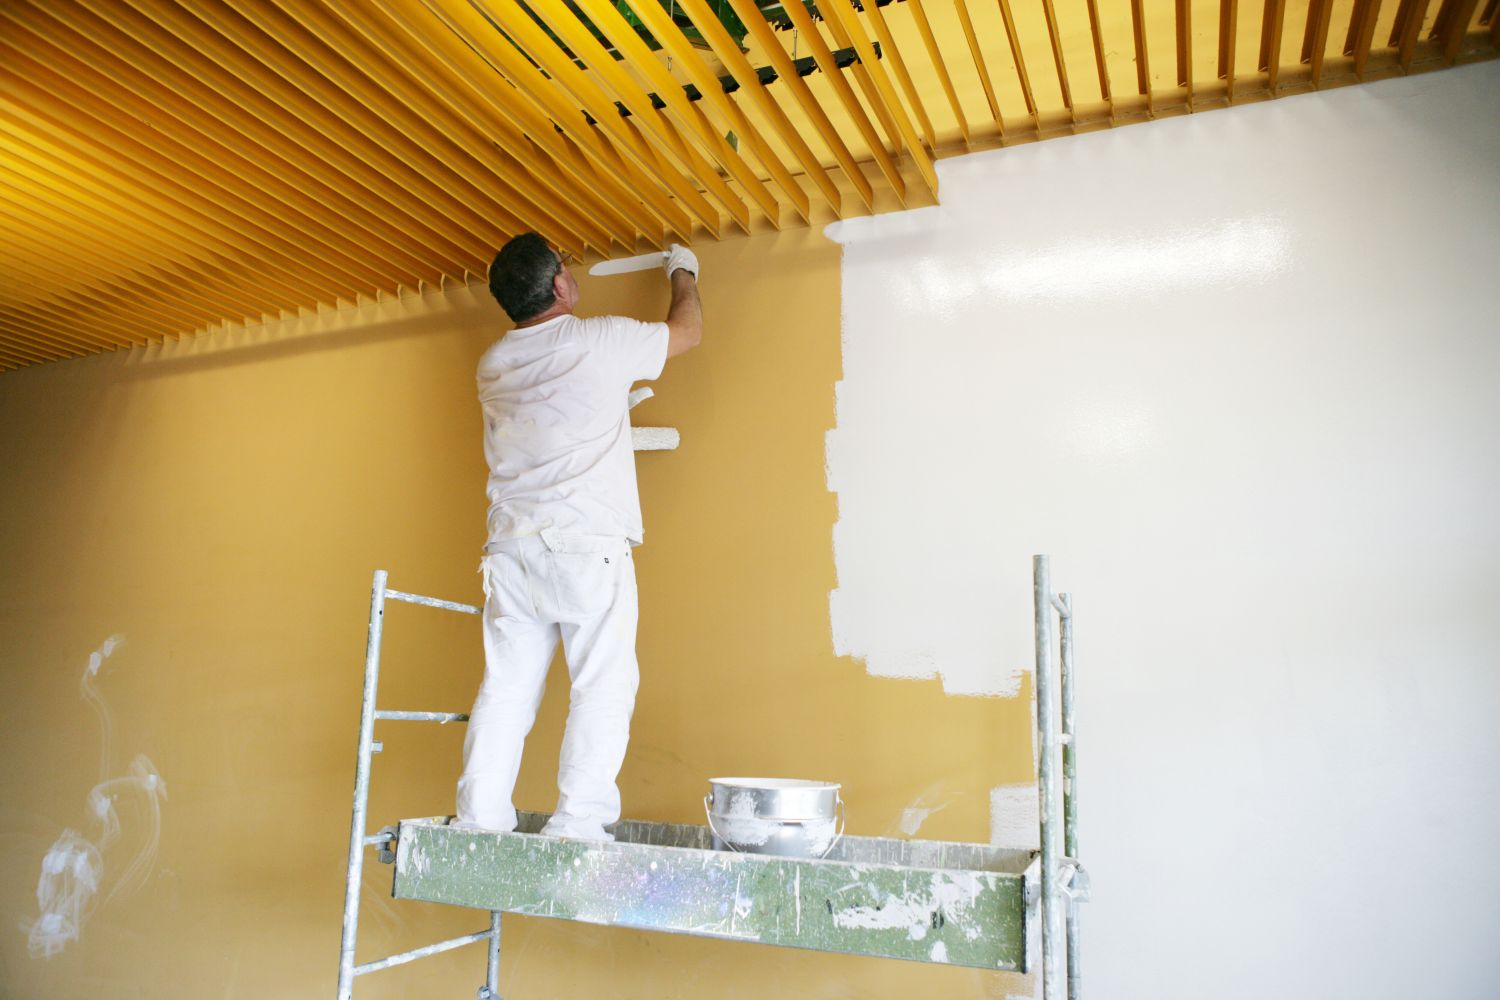 Texas Popcorn Removal Service Pros-popcorn removal services, residential & commercial popcorn ceiling removal-7-We offer professional popcorn removal services, residential & commercial popcorn ceiling removal, Knockdown Texture, Orange Peel Ceilings, Smooth Ceiling Finish, and Drywall Repair